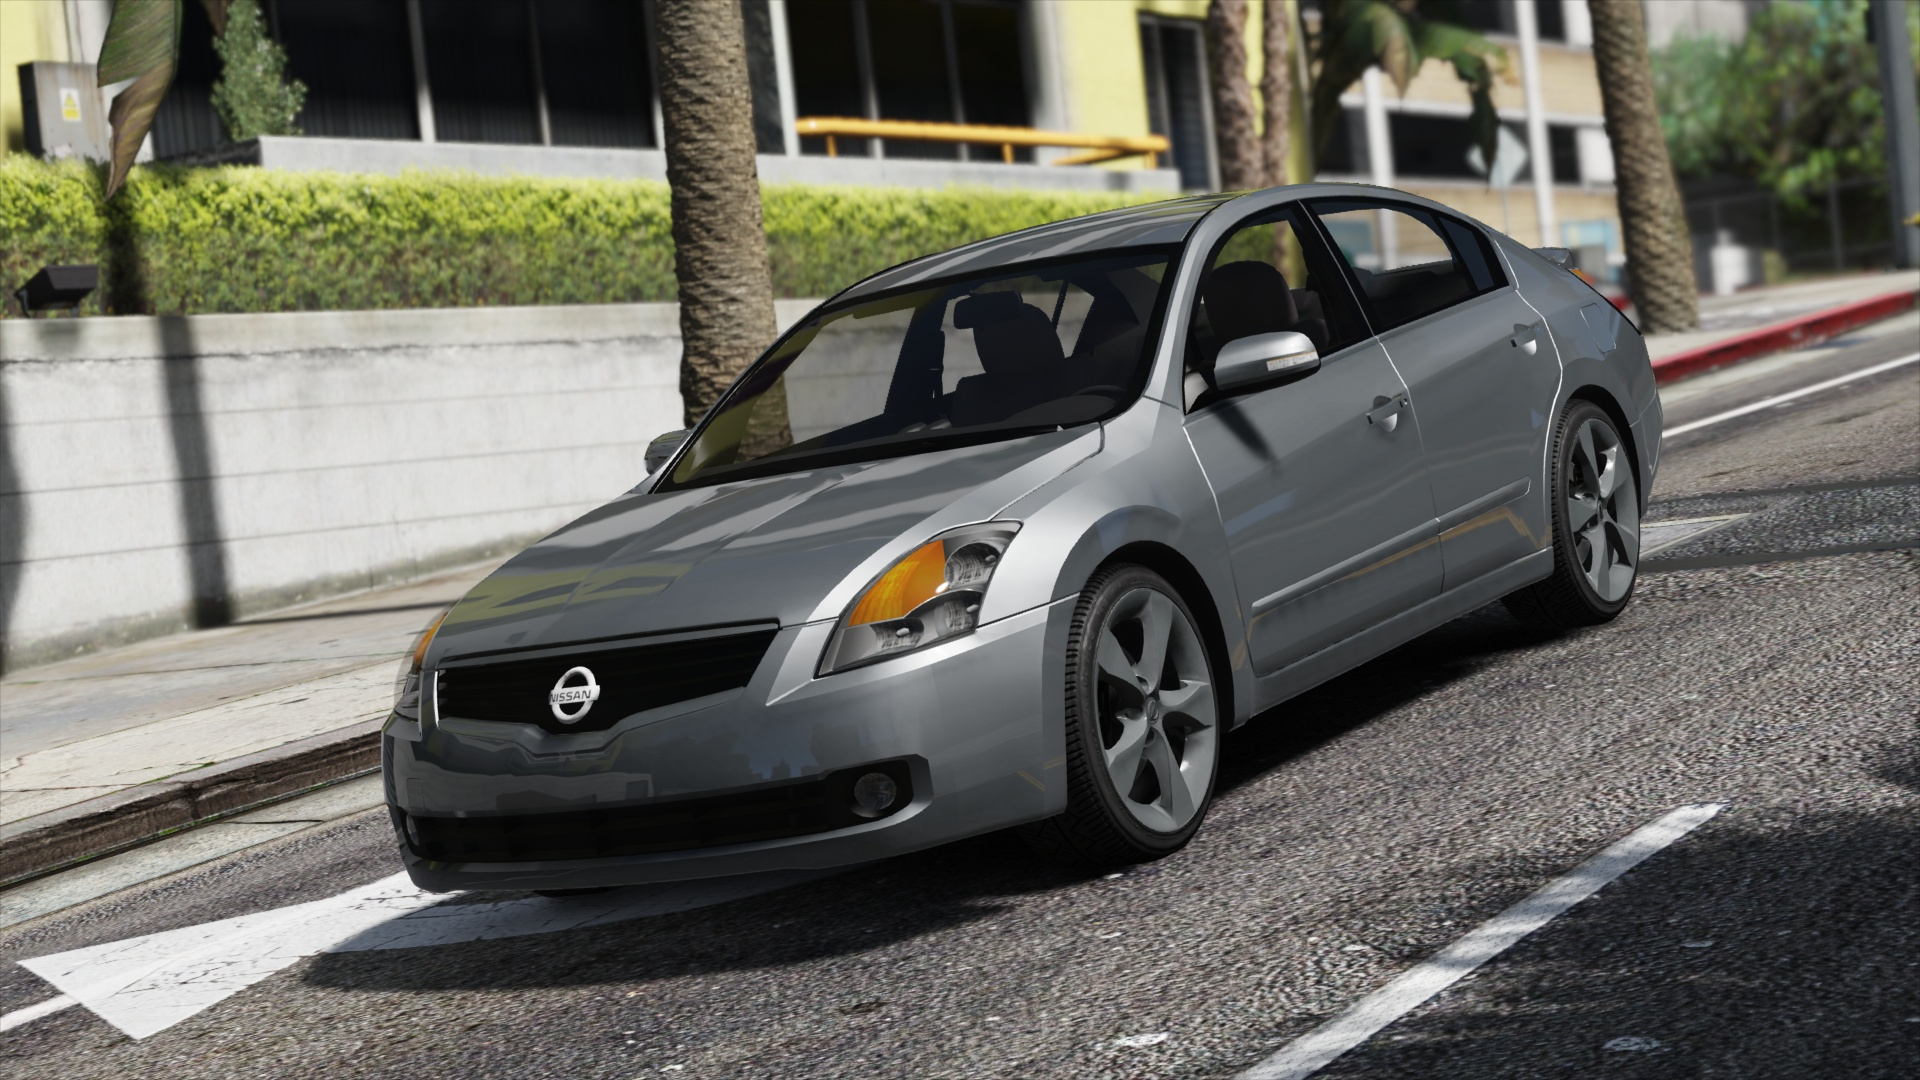 Nissan Altima 3 5se Template on custom nissan maxima